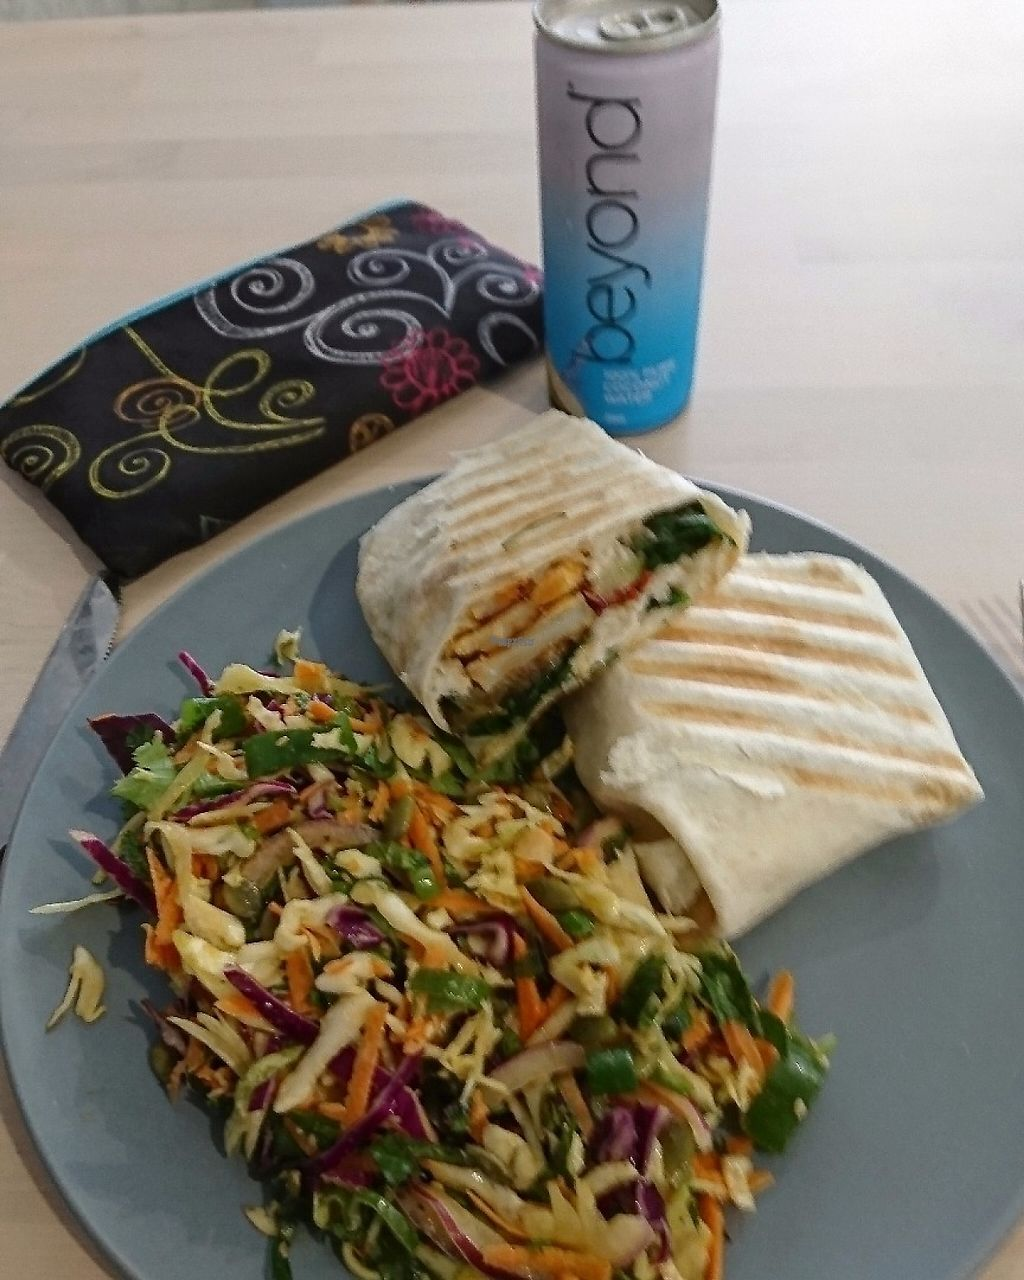 "Photo of Wombat Cafe & Store  by <a href=""/members/profile/Sharnasveganlife"">Sharnasveganlife</a> <br/>Delicious vegan veggie wrap and salad.  <br/> March 5, 2017  - <a href='/contact/abuse/image/81695/233167'>Report</a>"